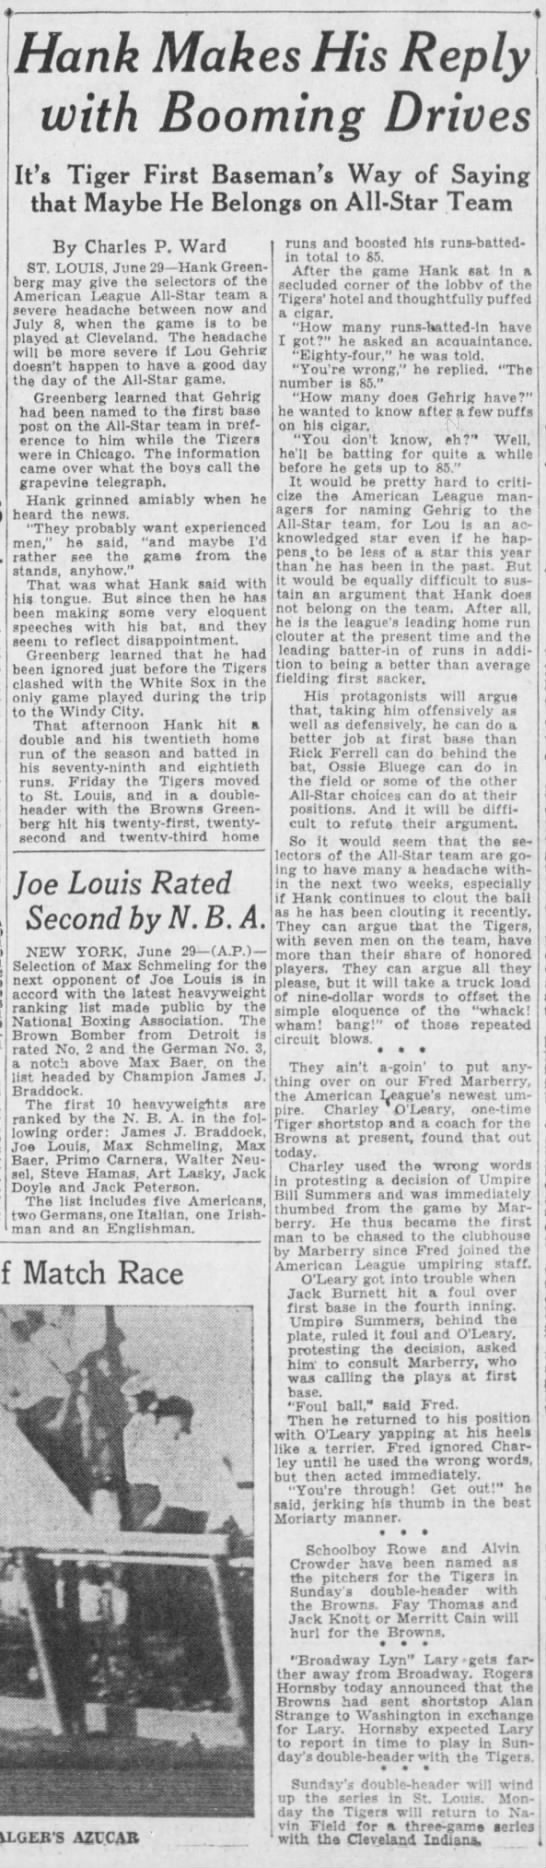 DET@STL 6/29/35 notes - mjj - . ; ' ; Hank Mak es His R ep ly with...